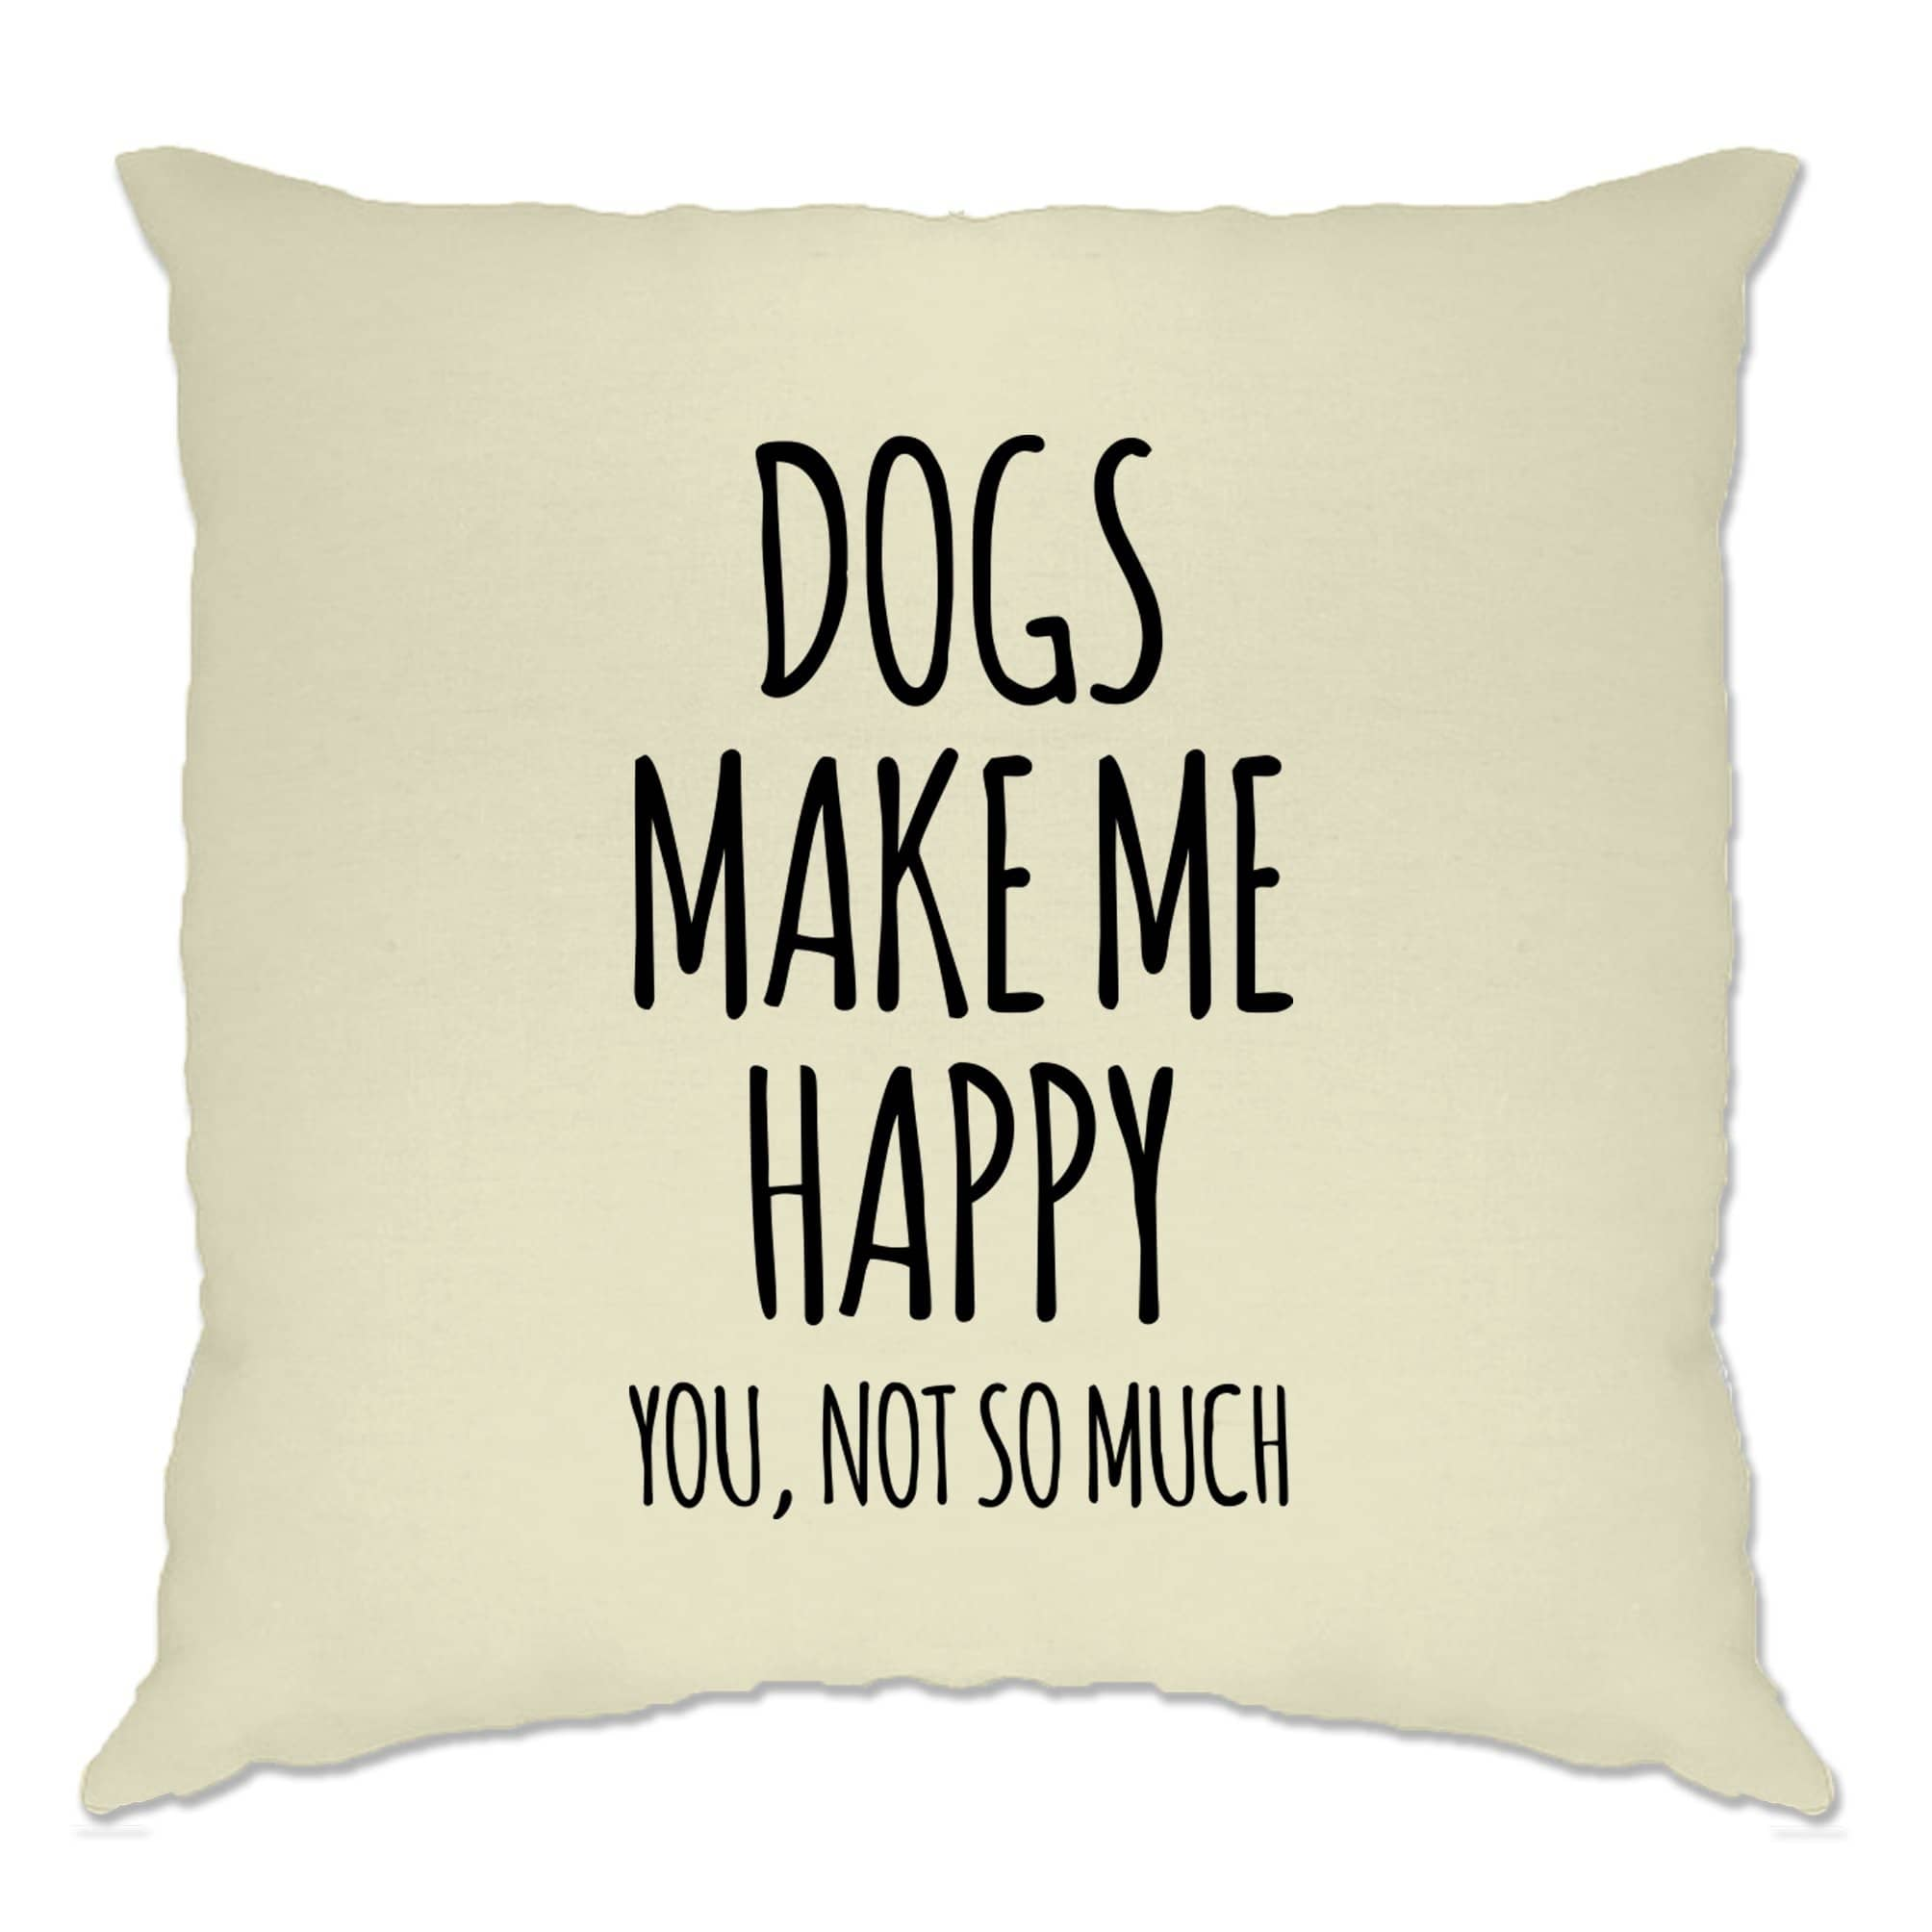 Novelty Cushion Cover Dogs Make Me Happy, You, Not So Much